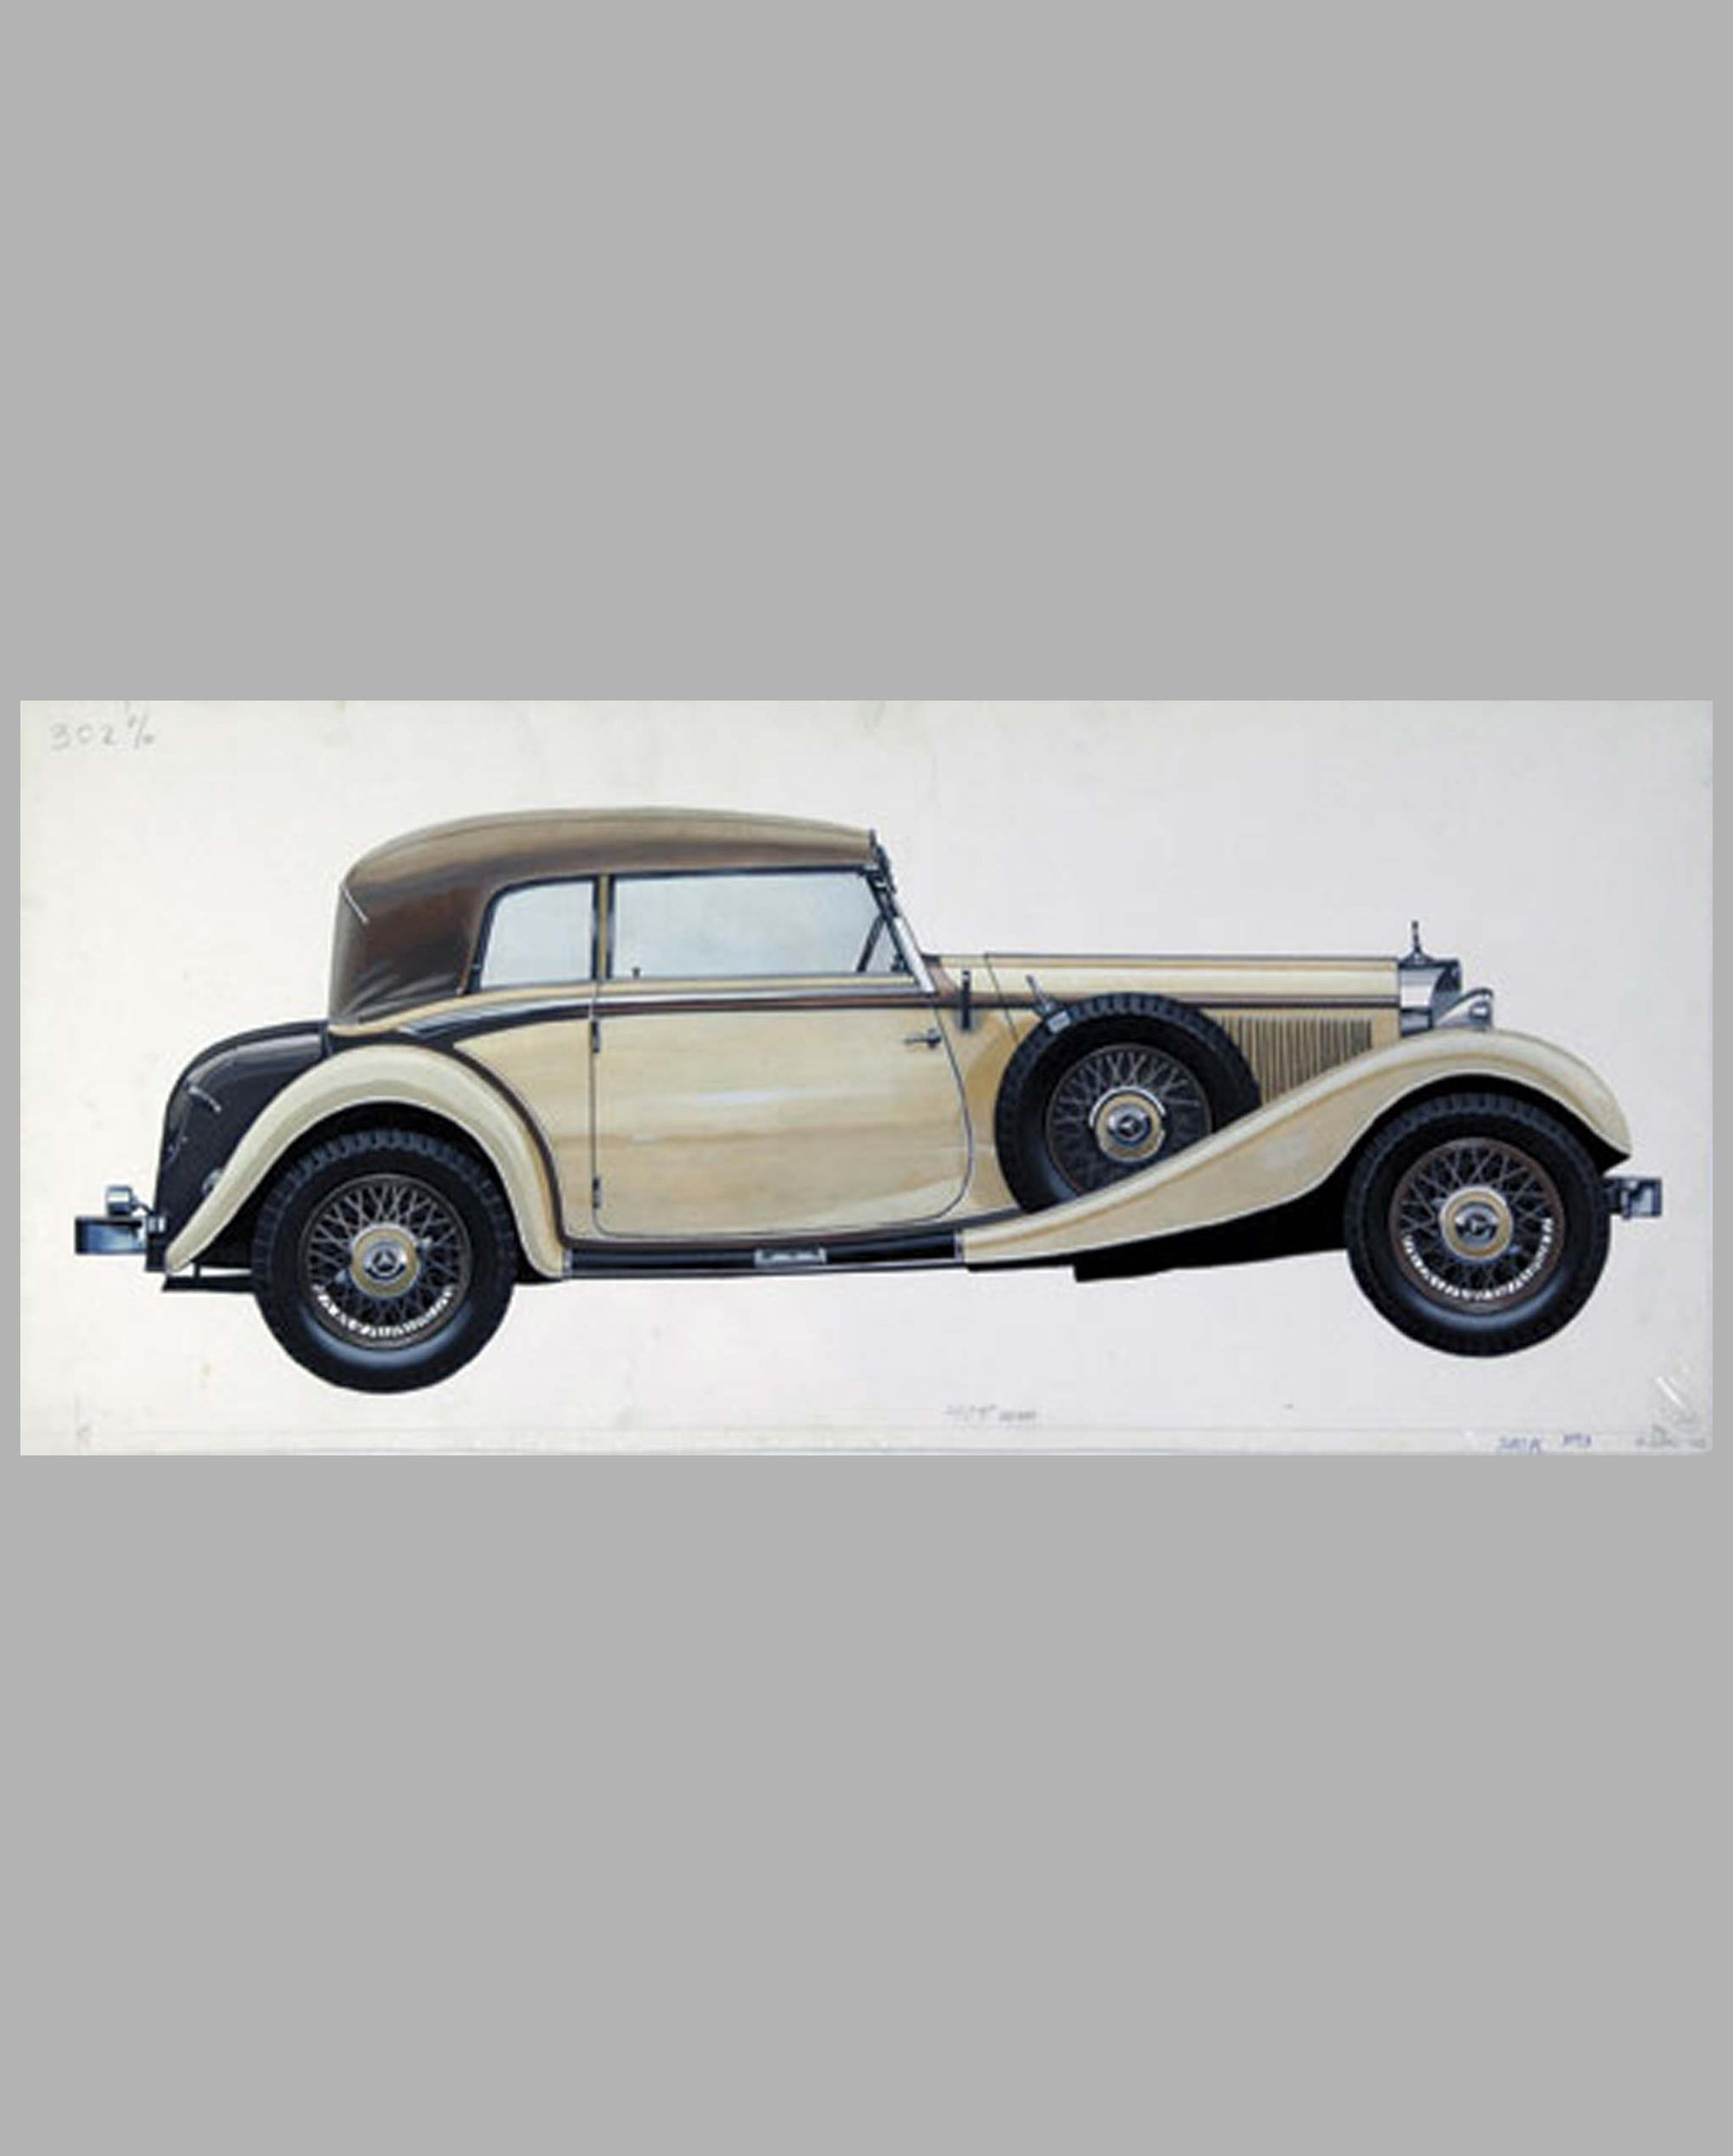 1933 Mercedes-Benz 380K Cabriolet painting by C. Demand